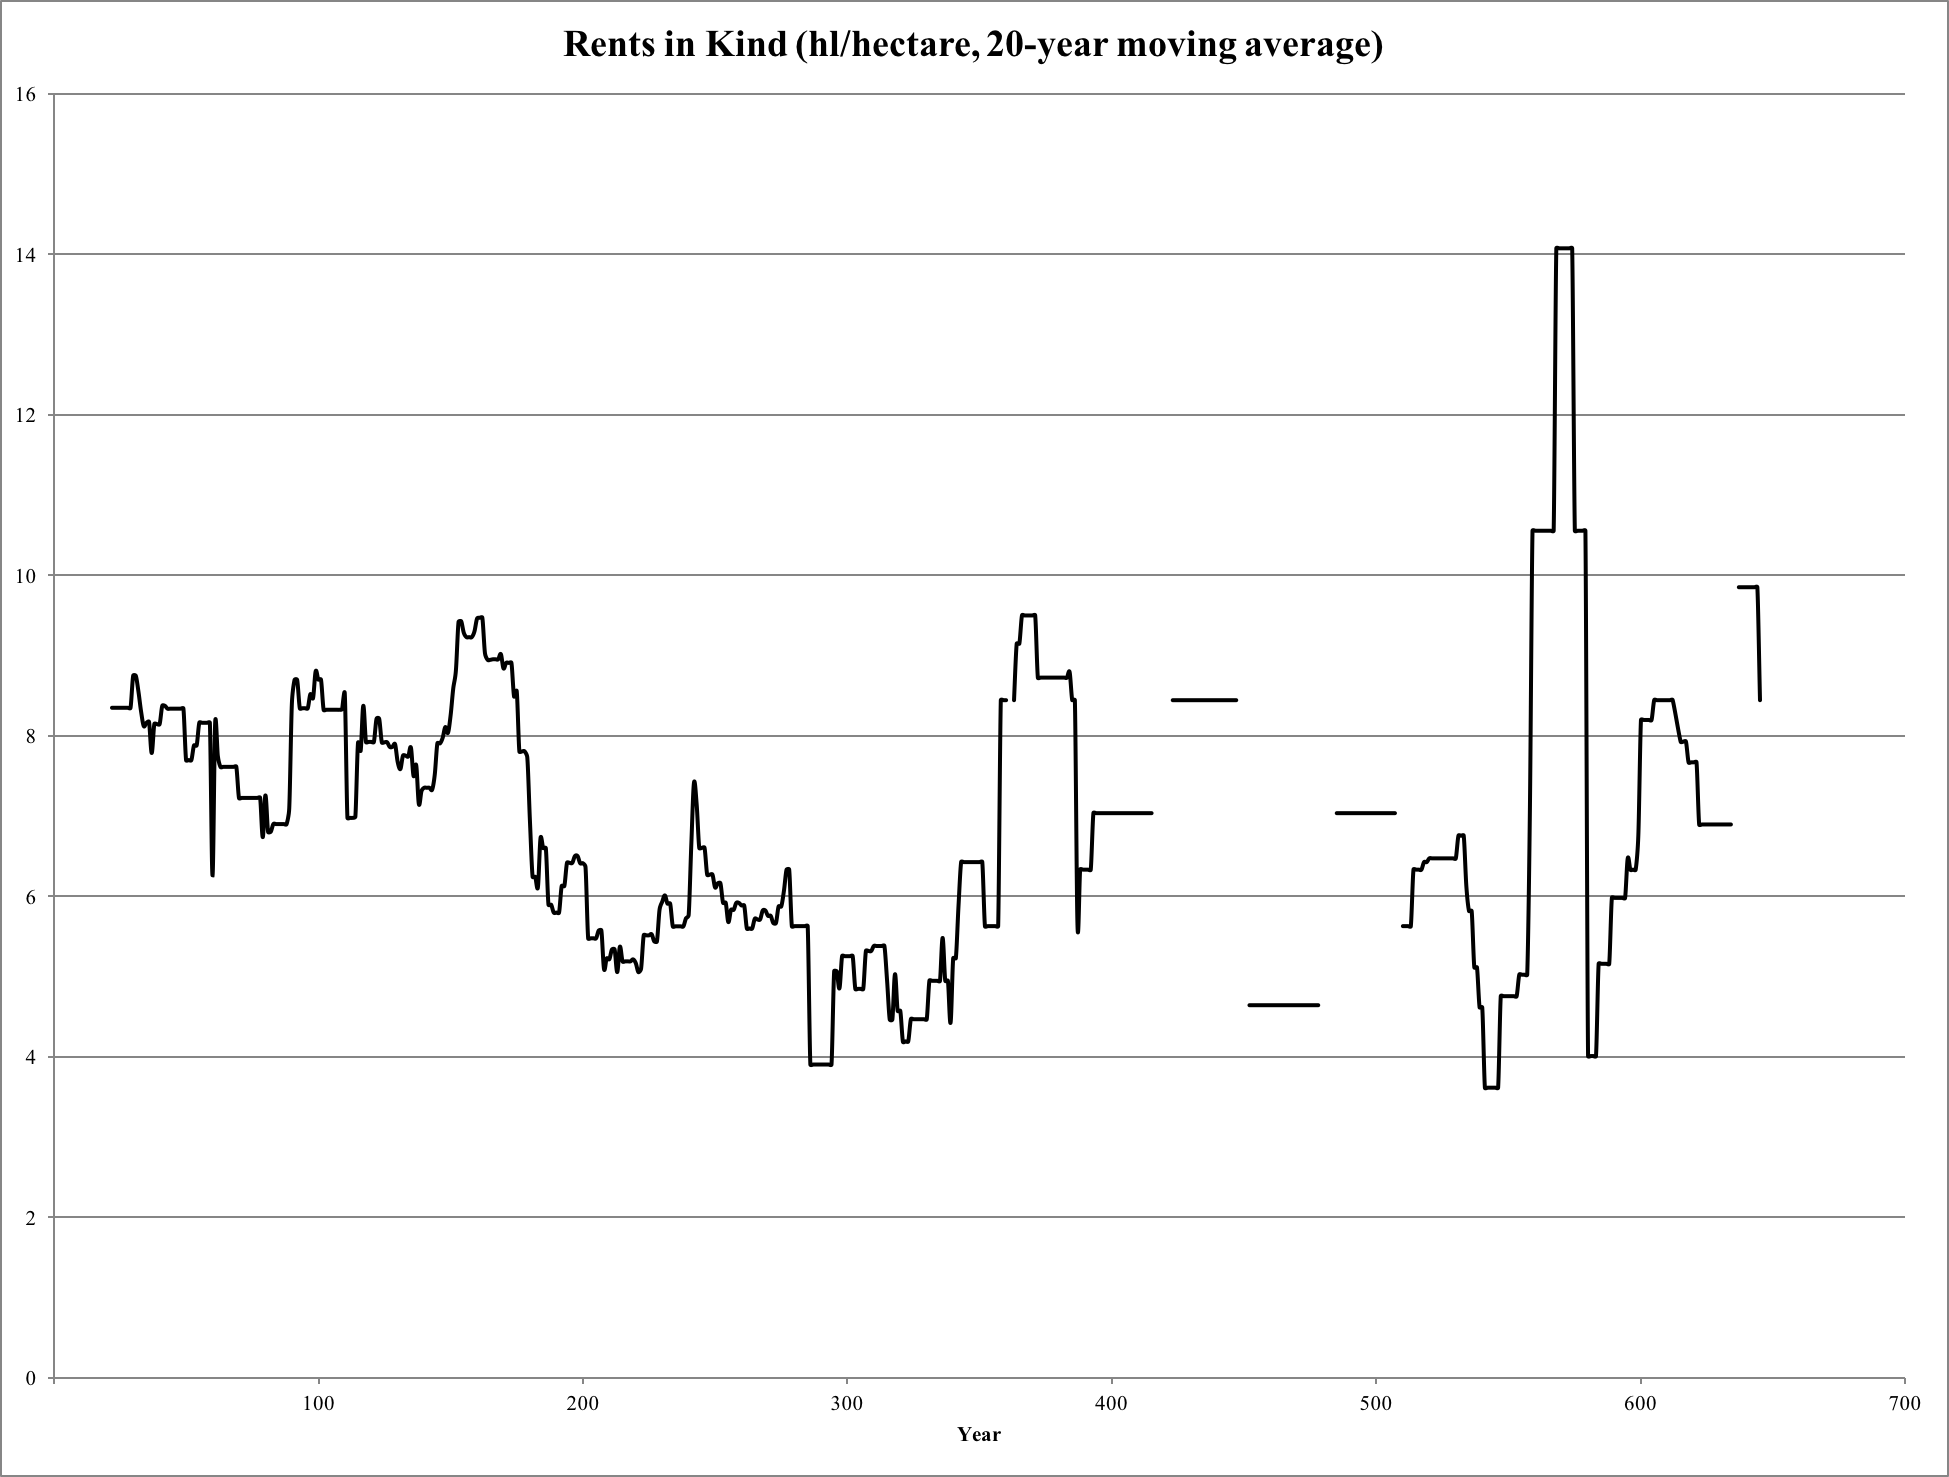 Prices, Rents, and Wages in the Roman Empire